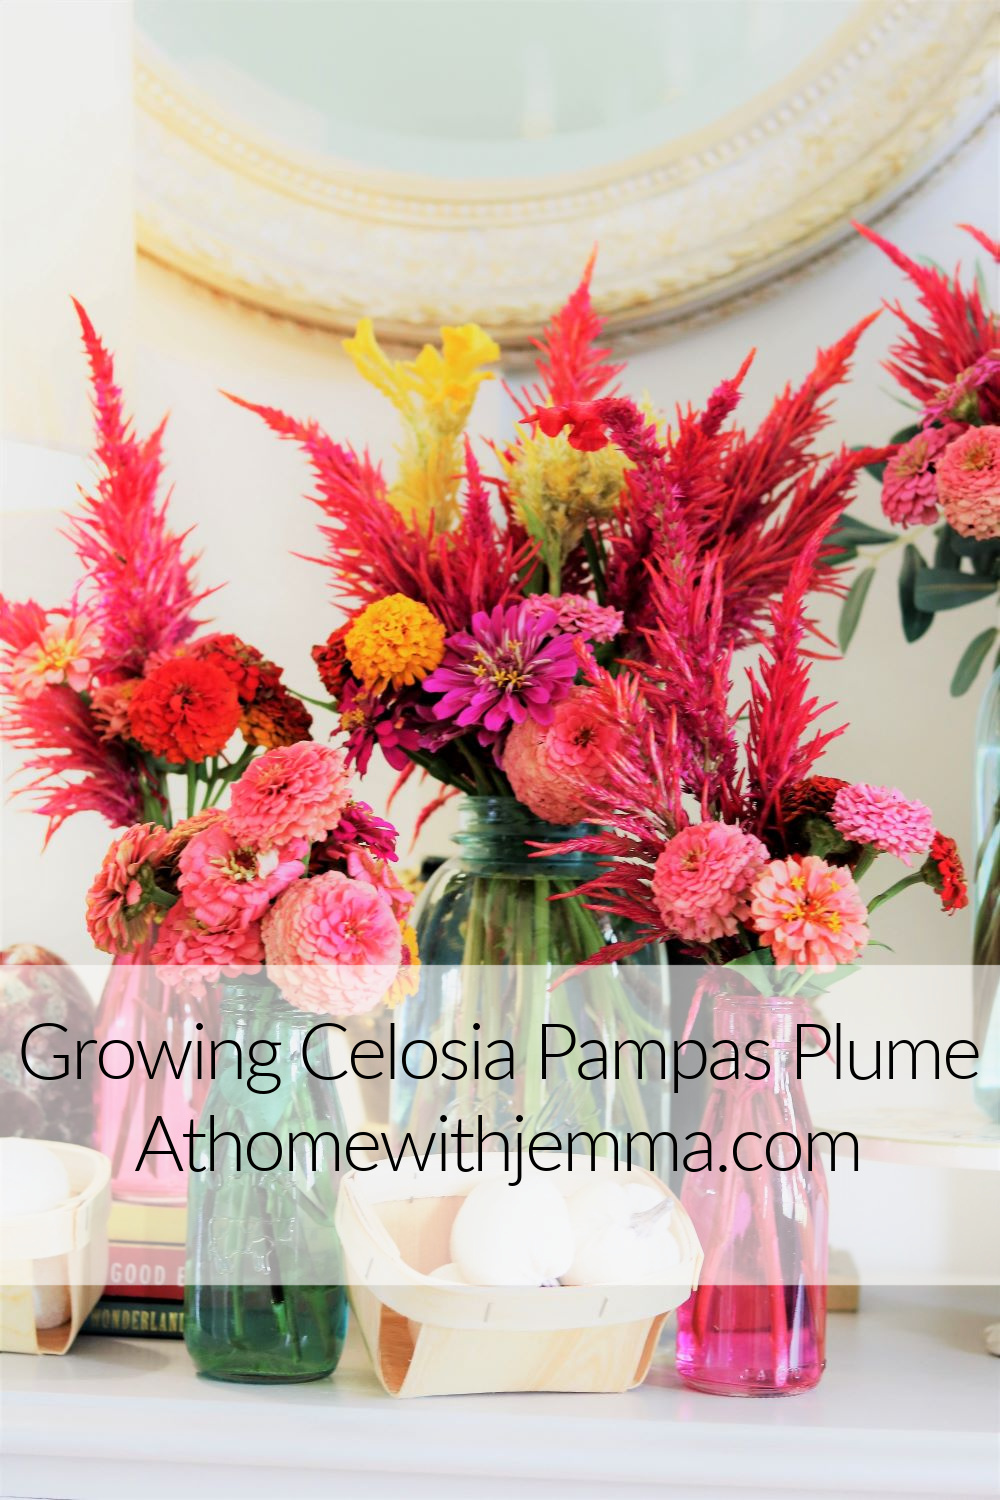 flower-grower-garden-gardening-information-sprouting-drying-bouquets-athomewithjemma